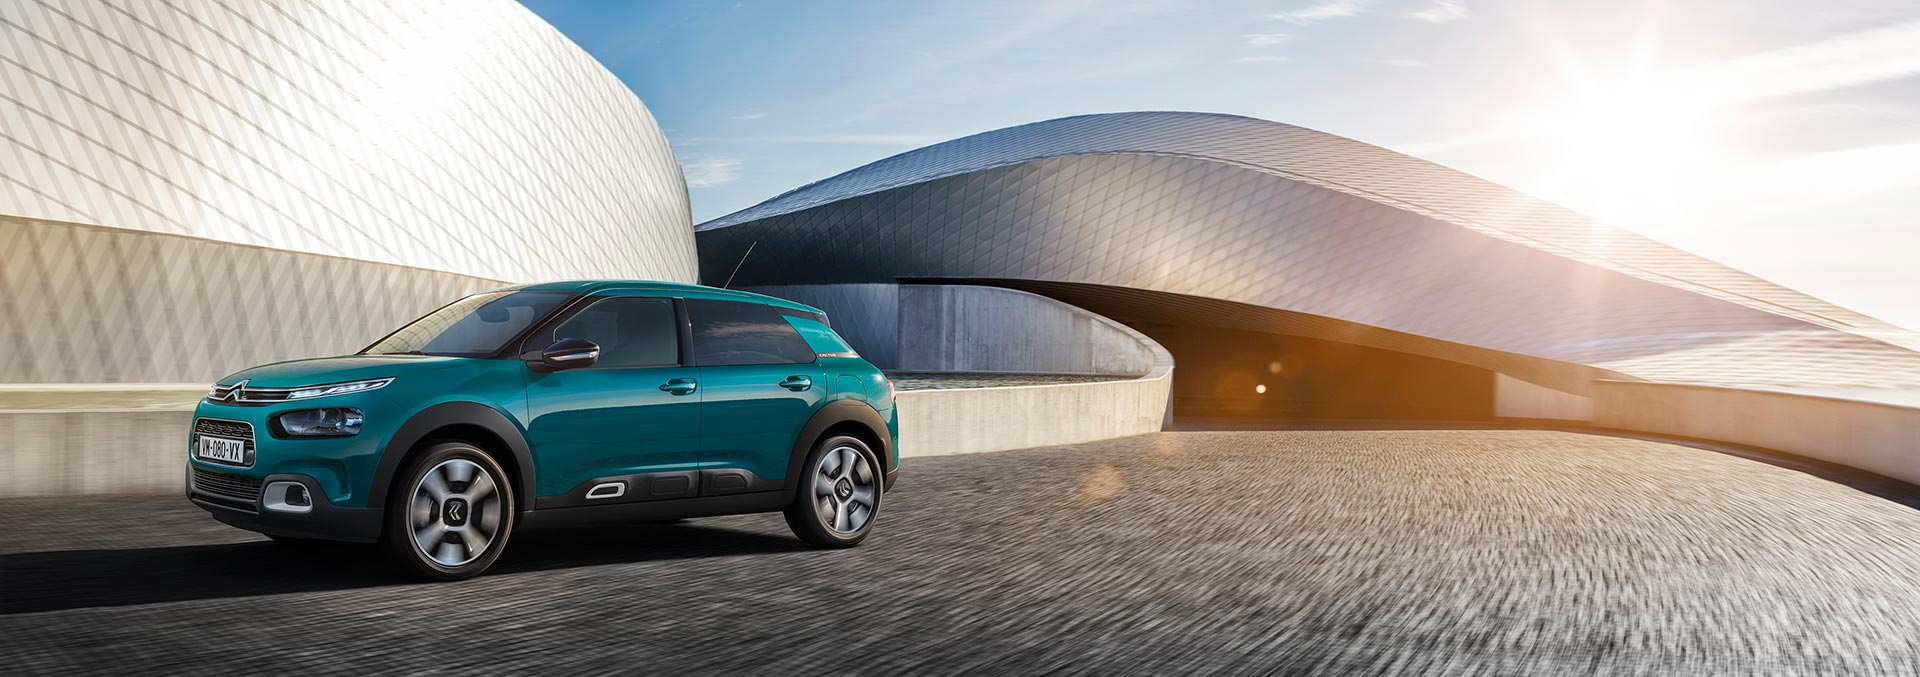 Citroen C4 Cactus Photo Gallery